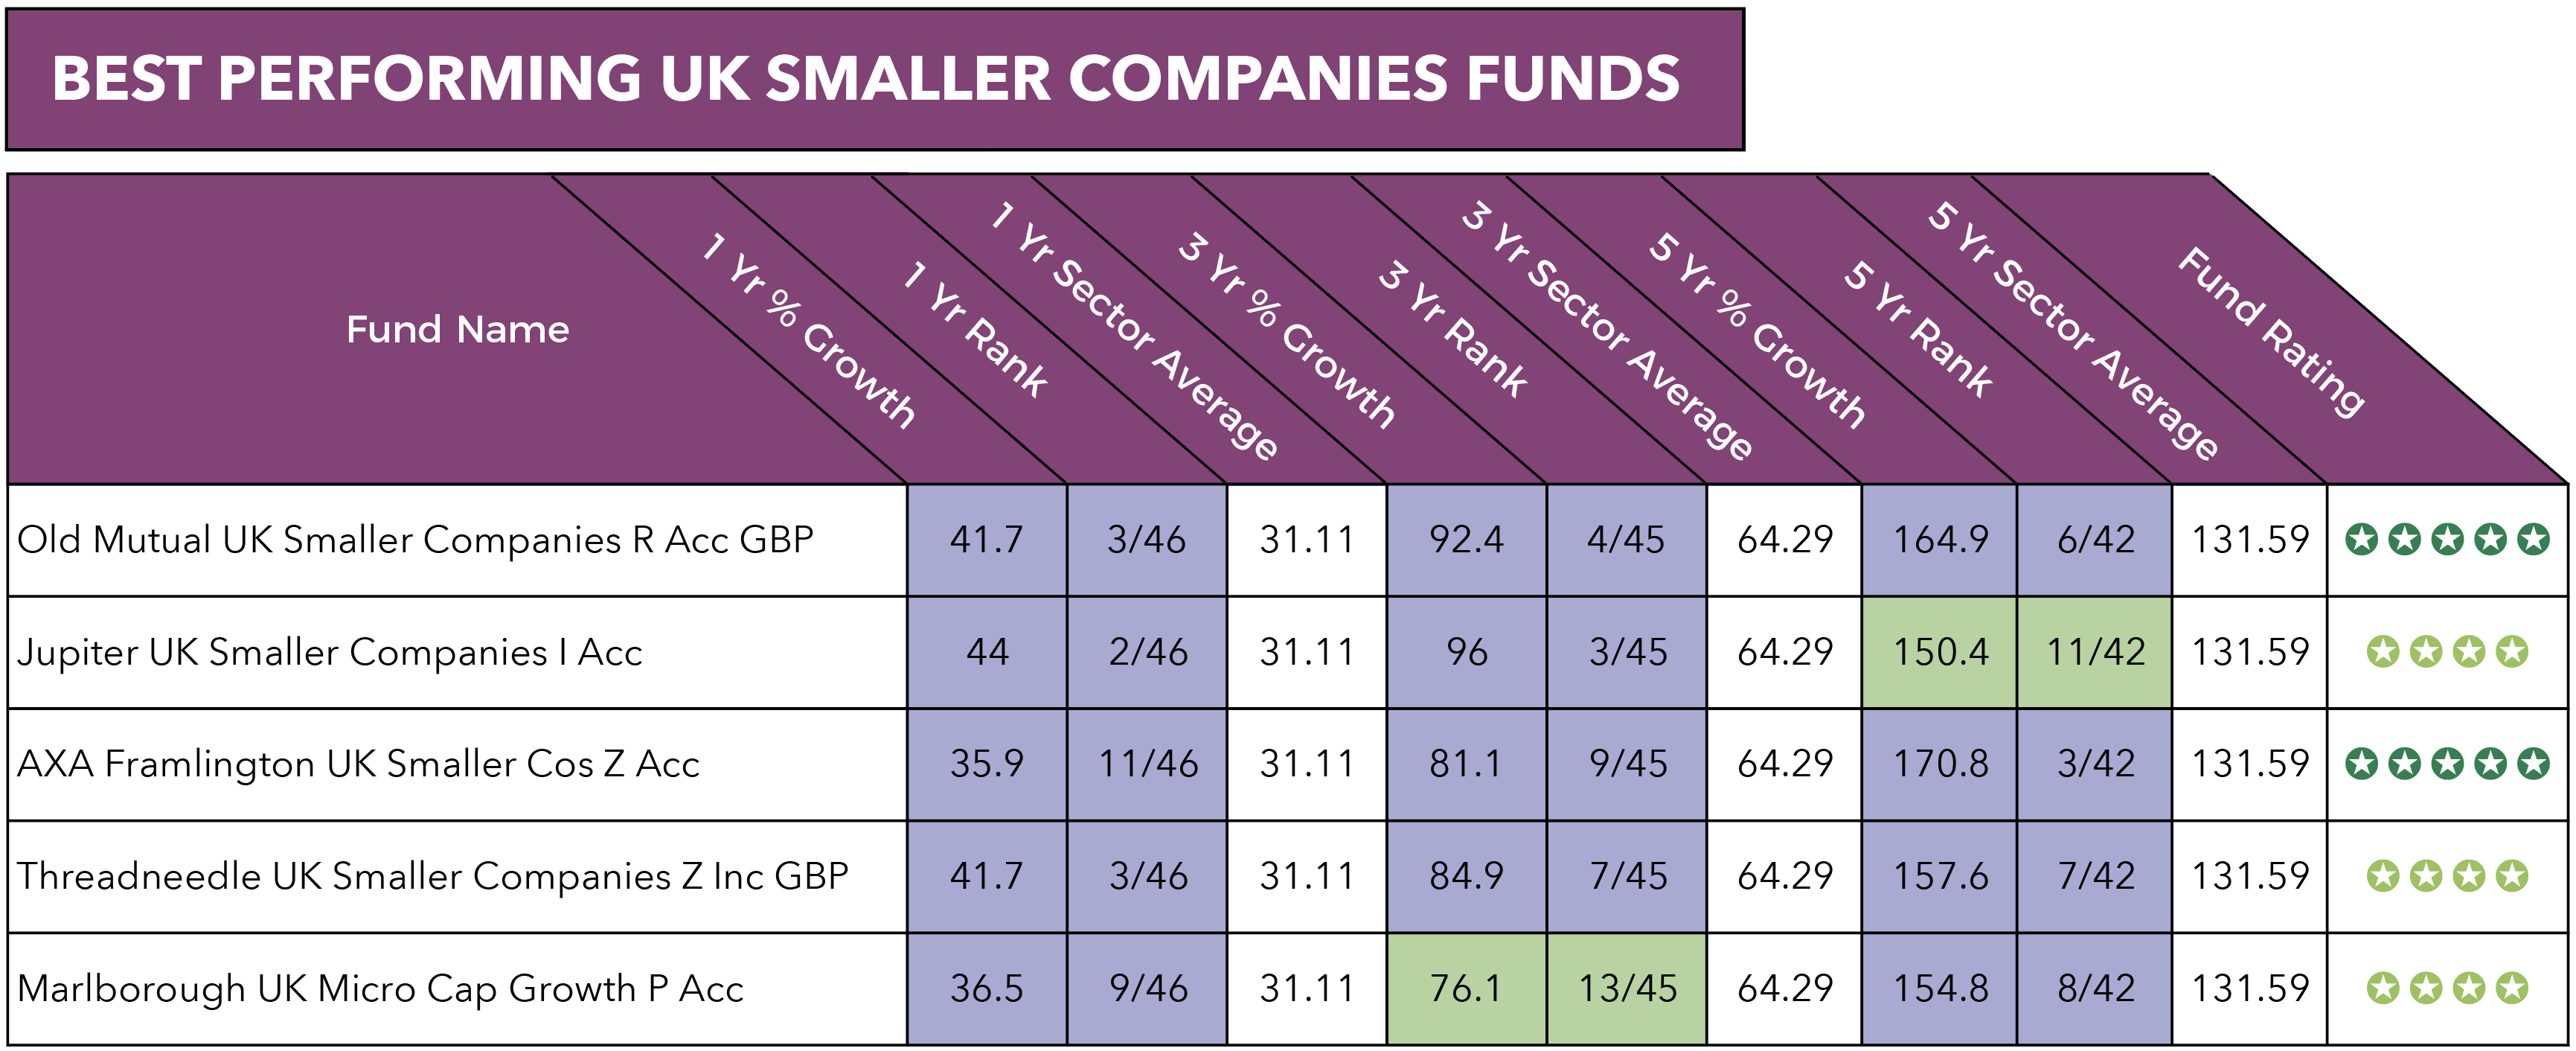 Best UK Smaller companies funds.png